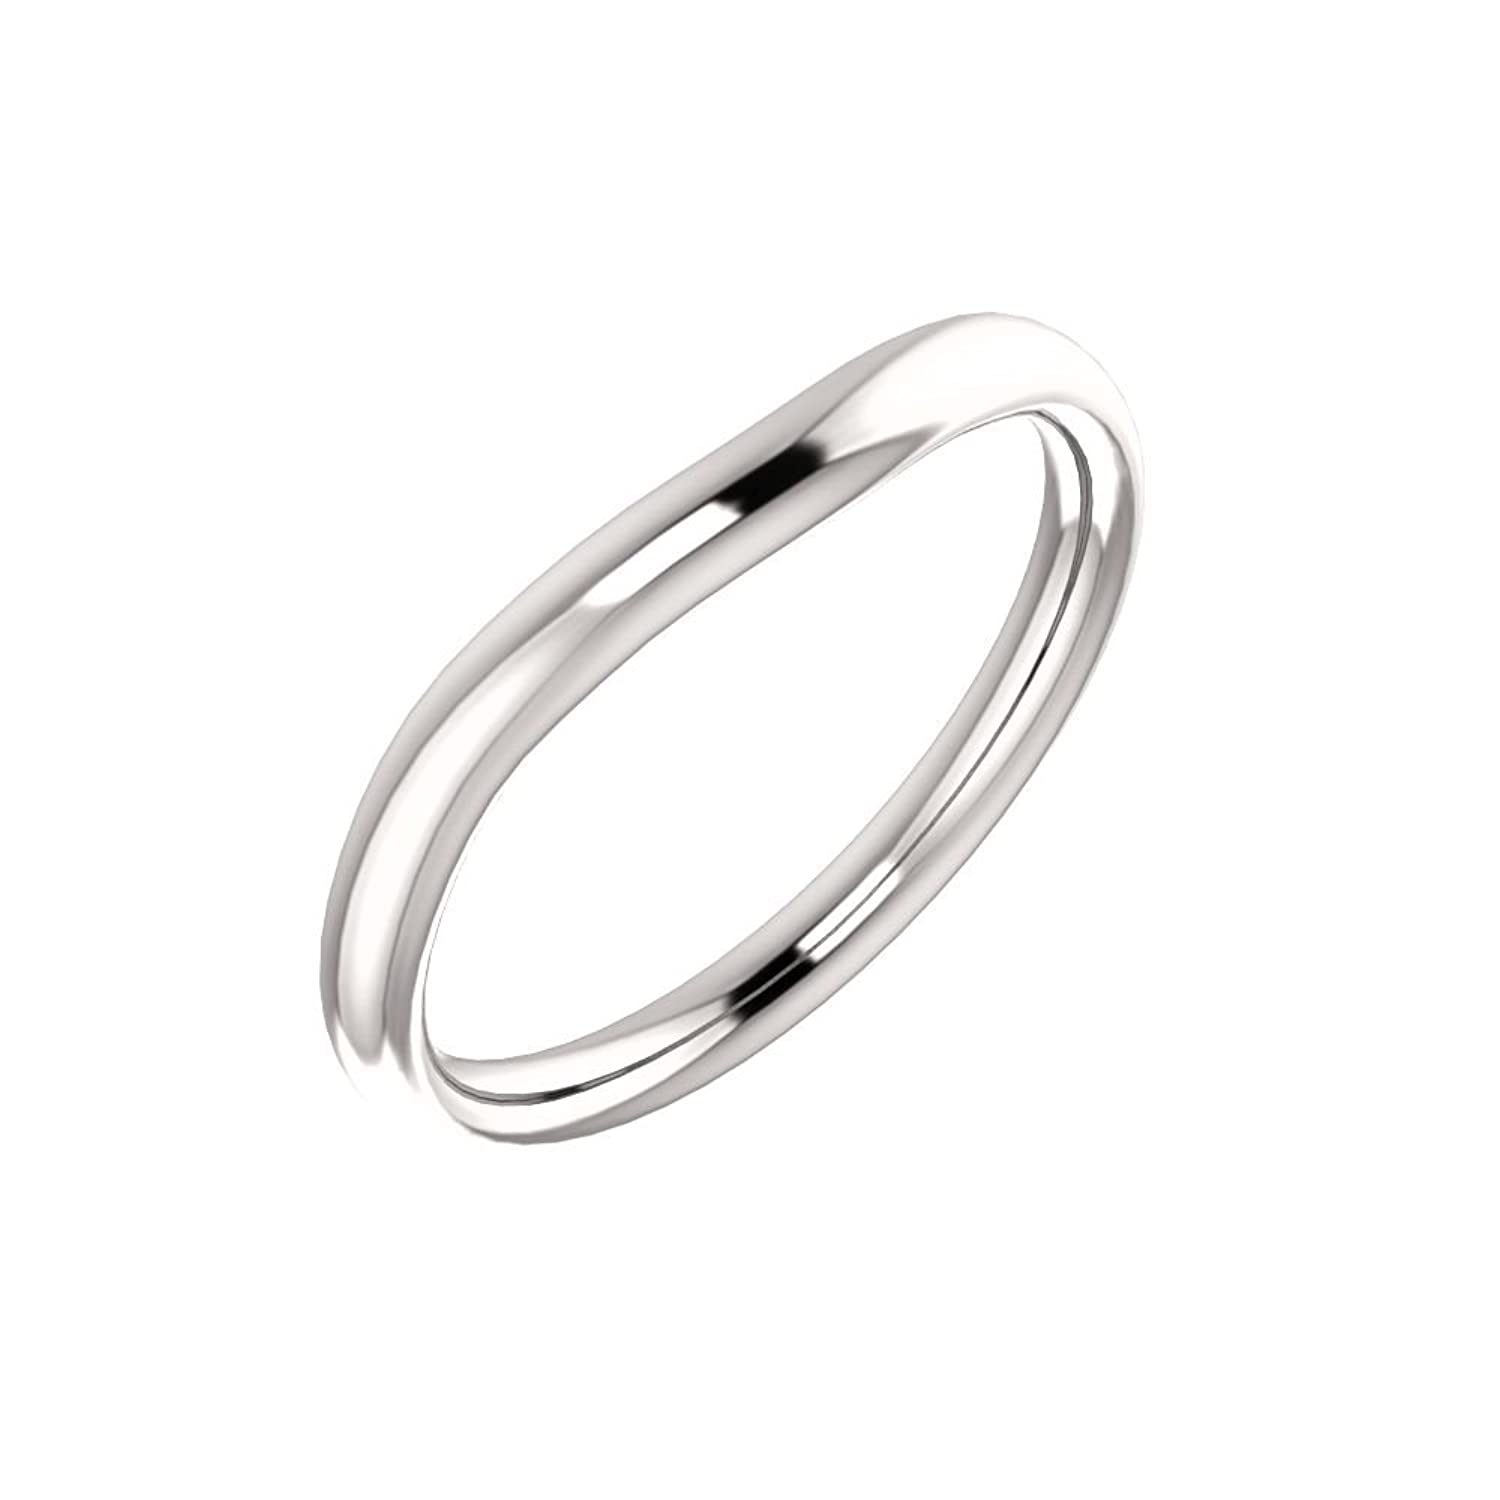 STU001- 18K White Band for 5x5mm Asscher Ring - Click Image to Close